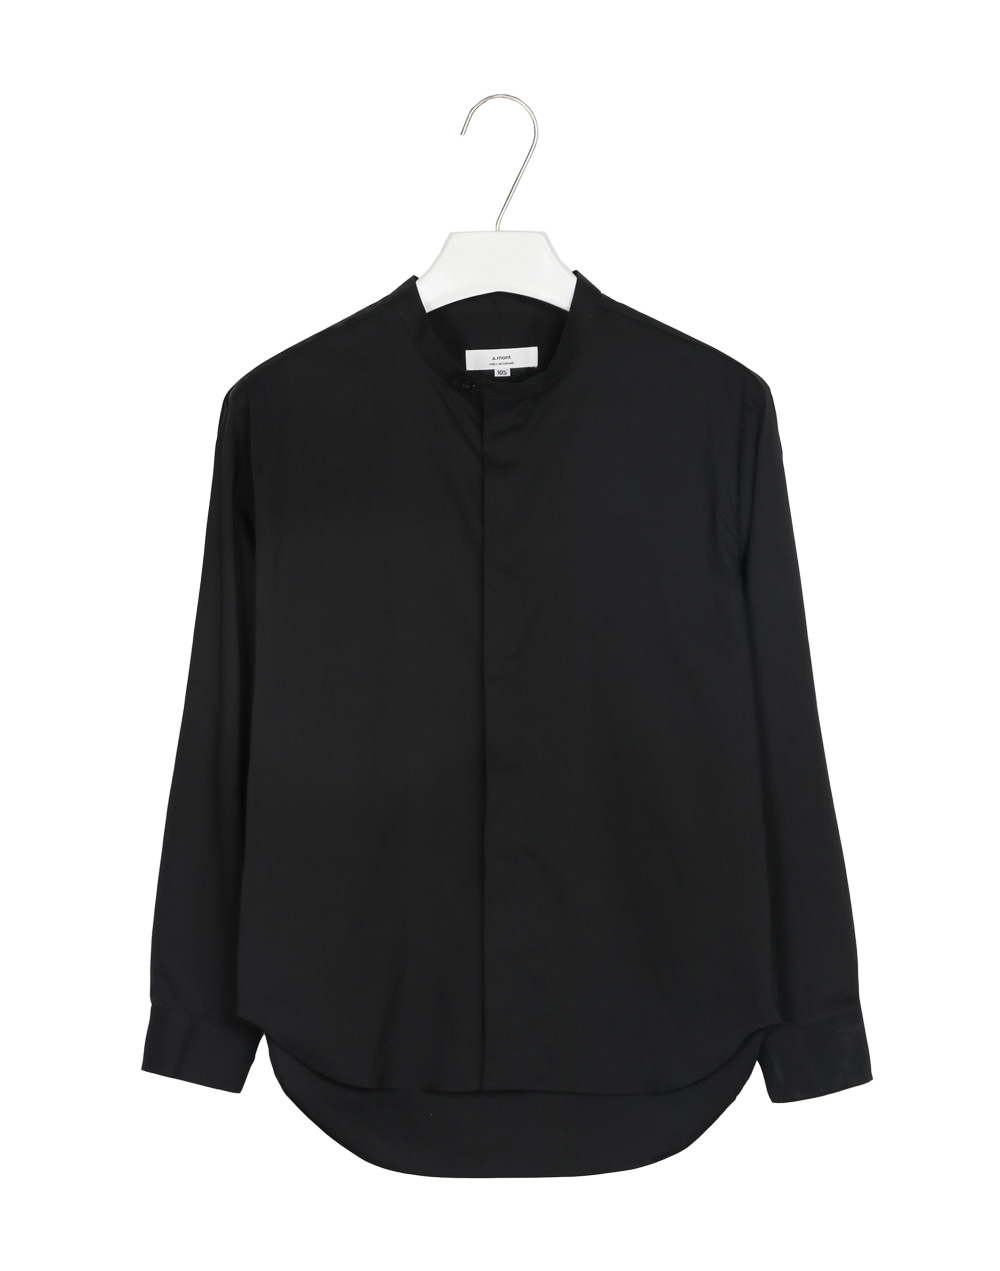 grandad collar long shirts #1900 black